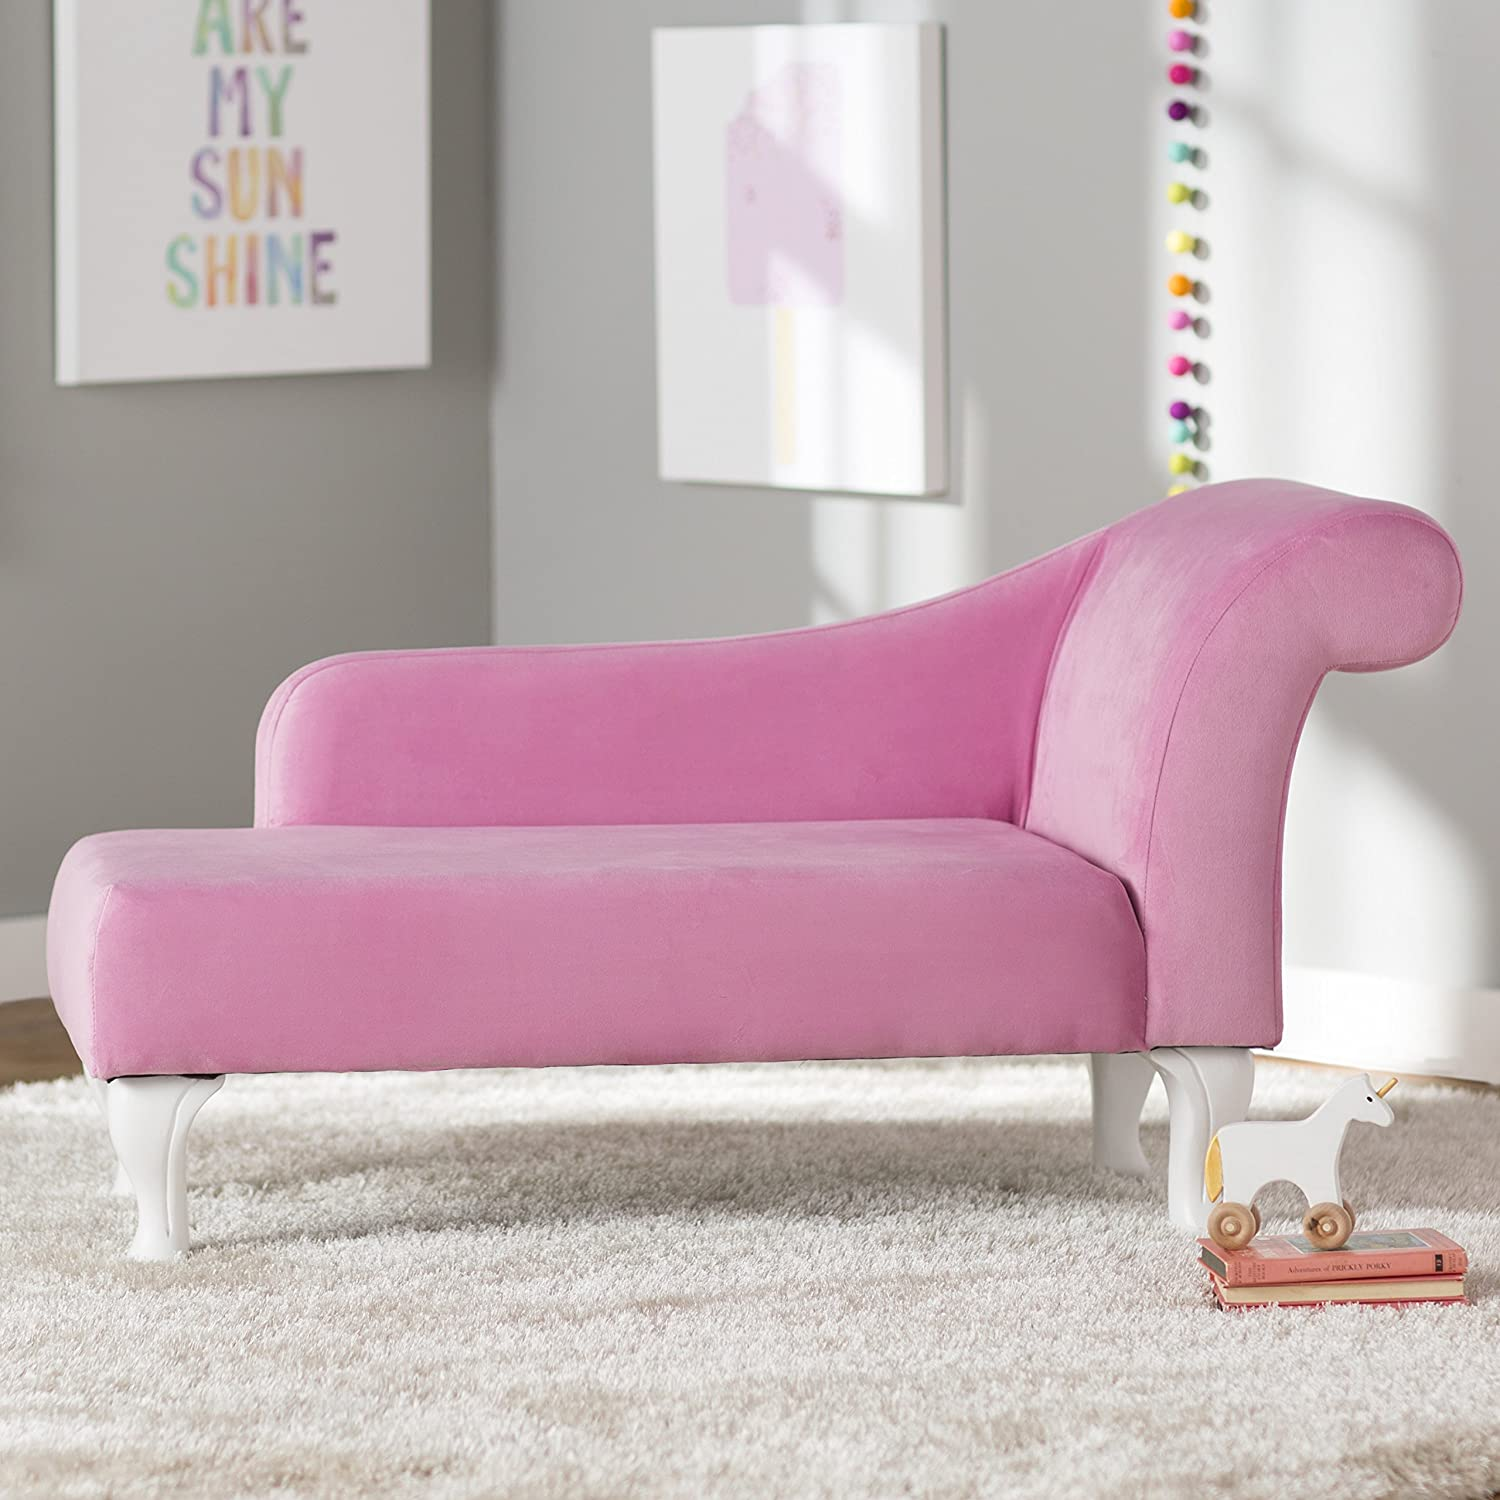 gallery chaise tommy hot of lounge picture awesome chairs bahama chair pink